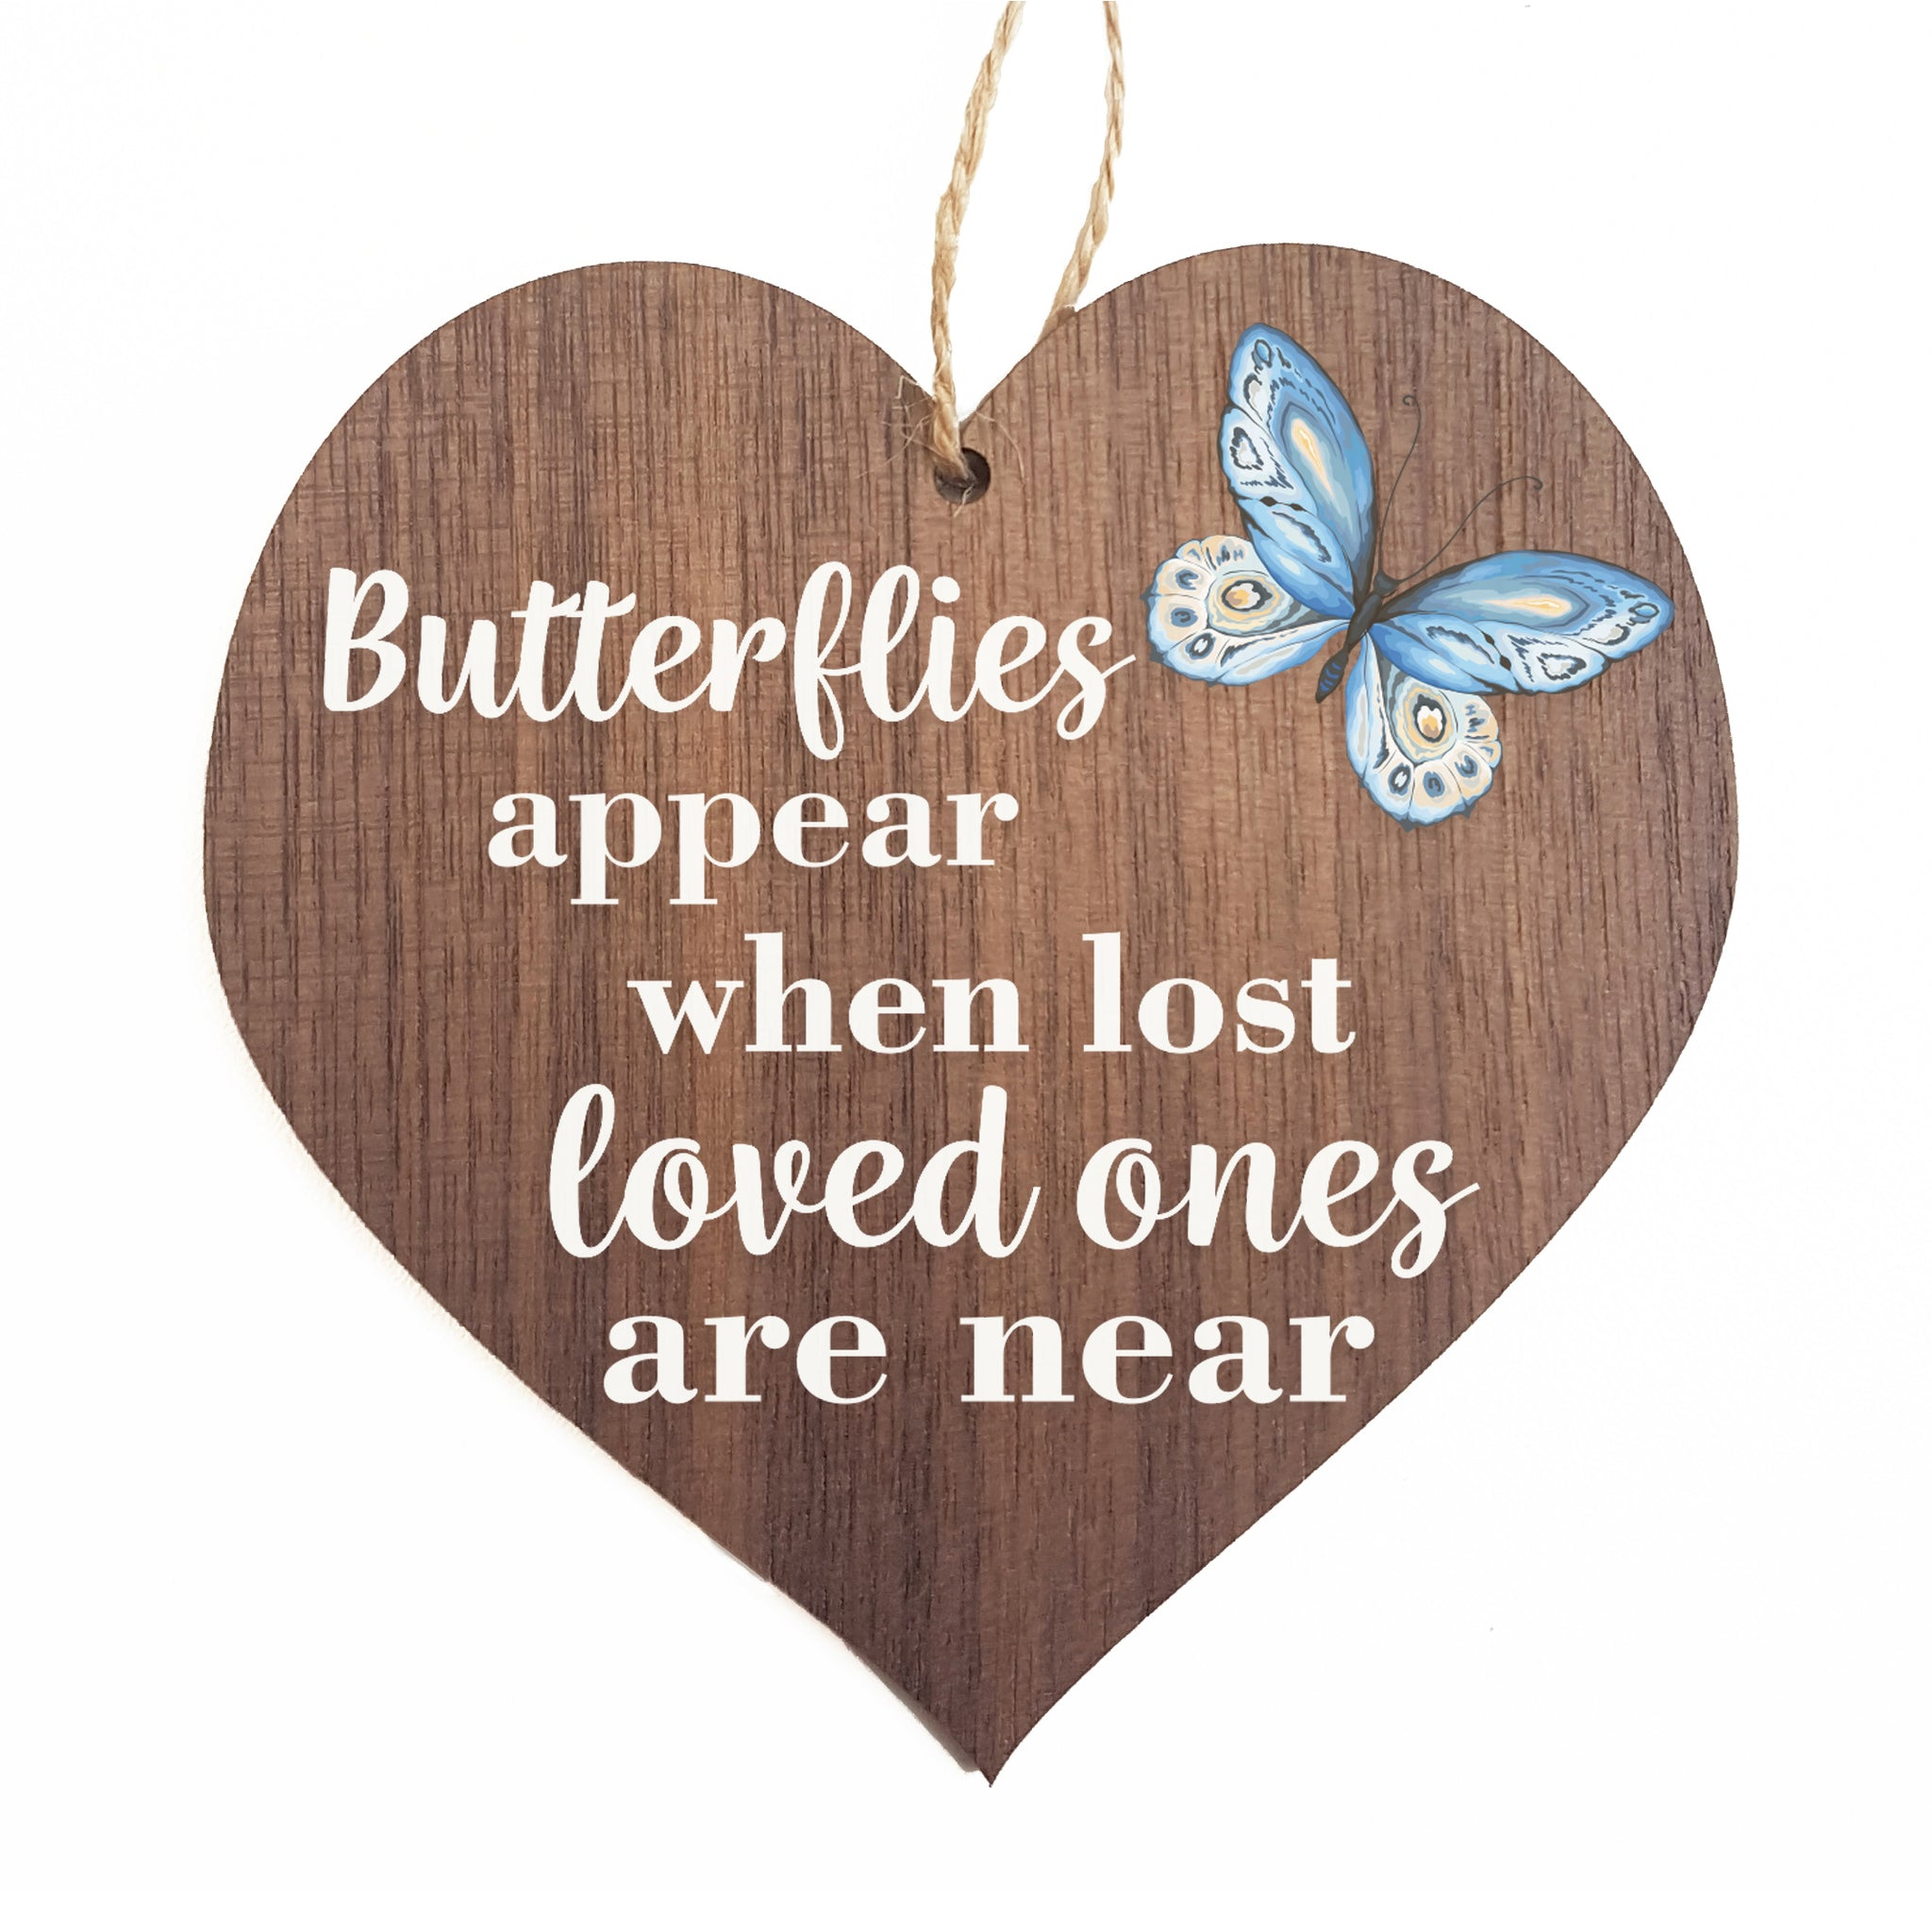 butterflies appear when lost love ones are near